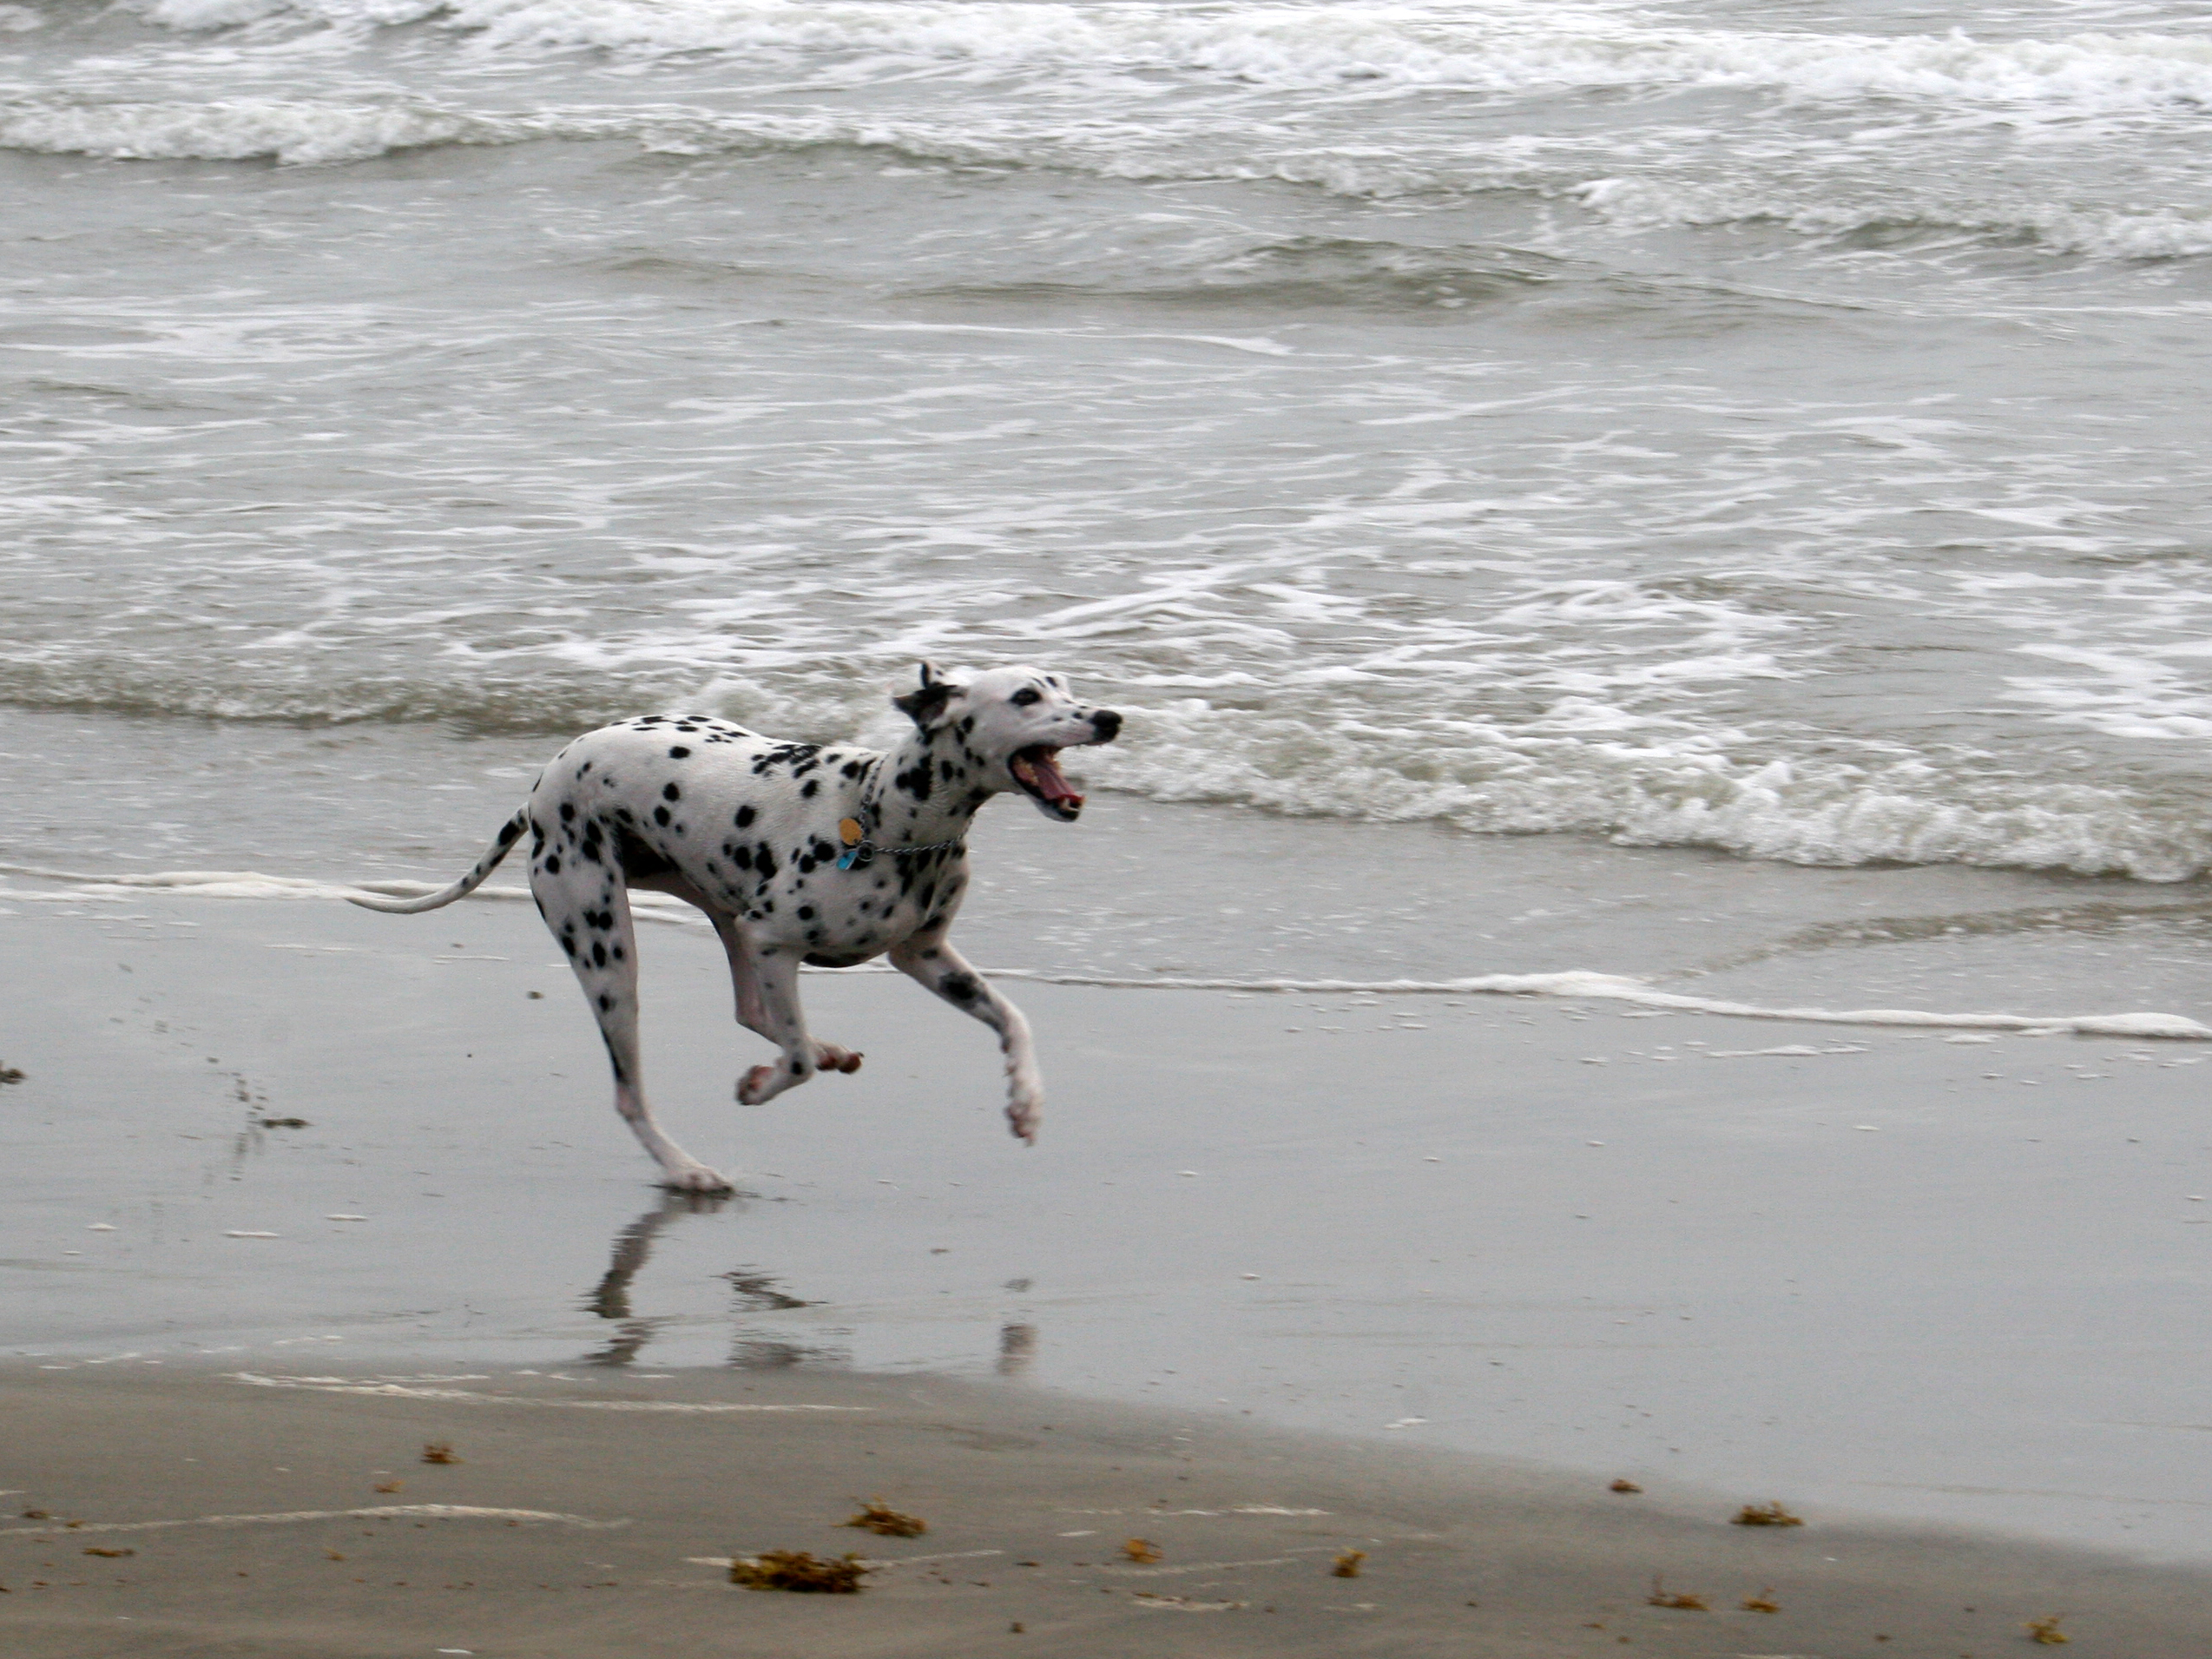 Dalmatian running on beach